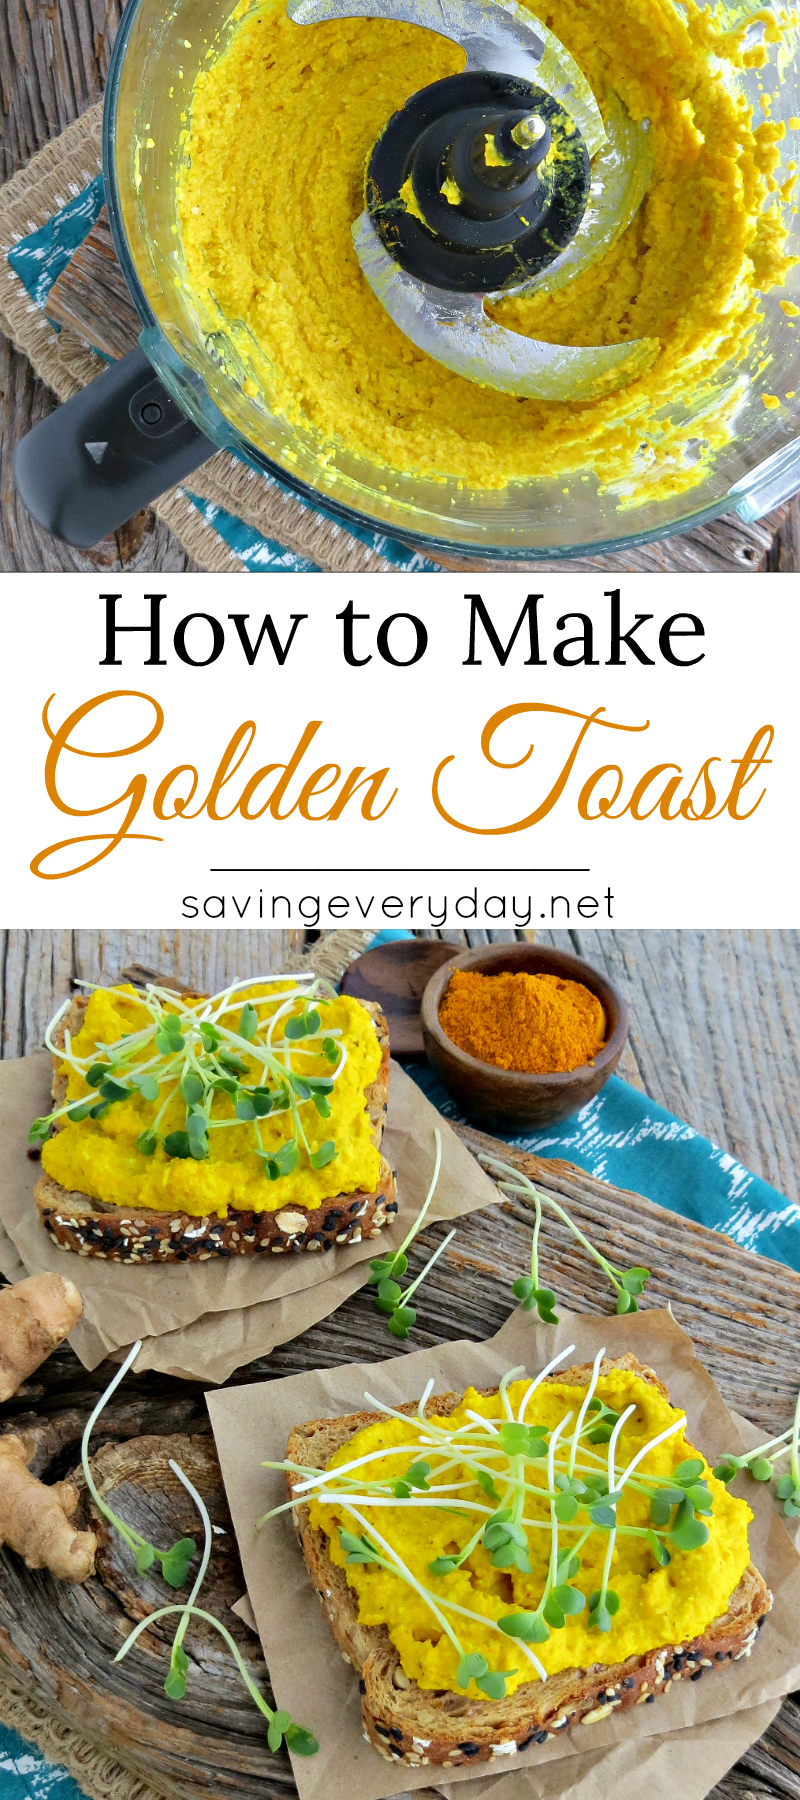 How to Make Golden Toast Pinterest